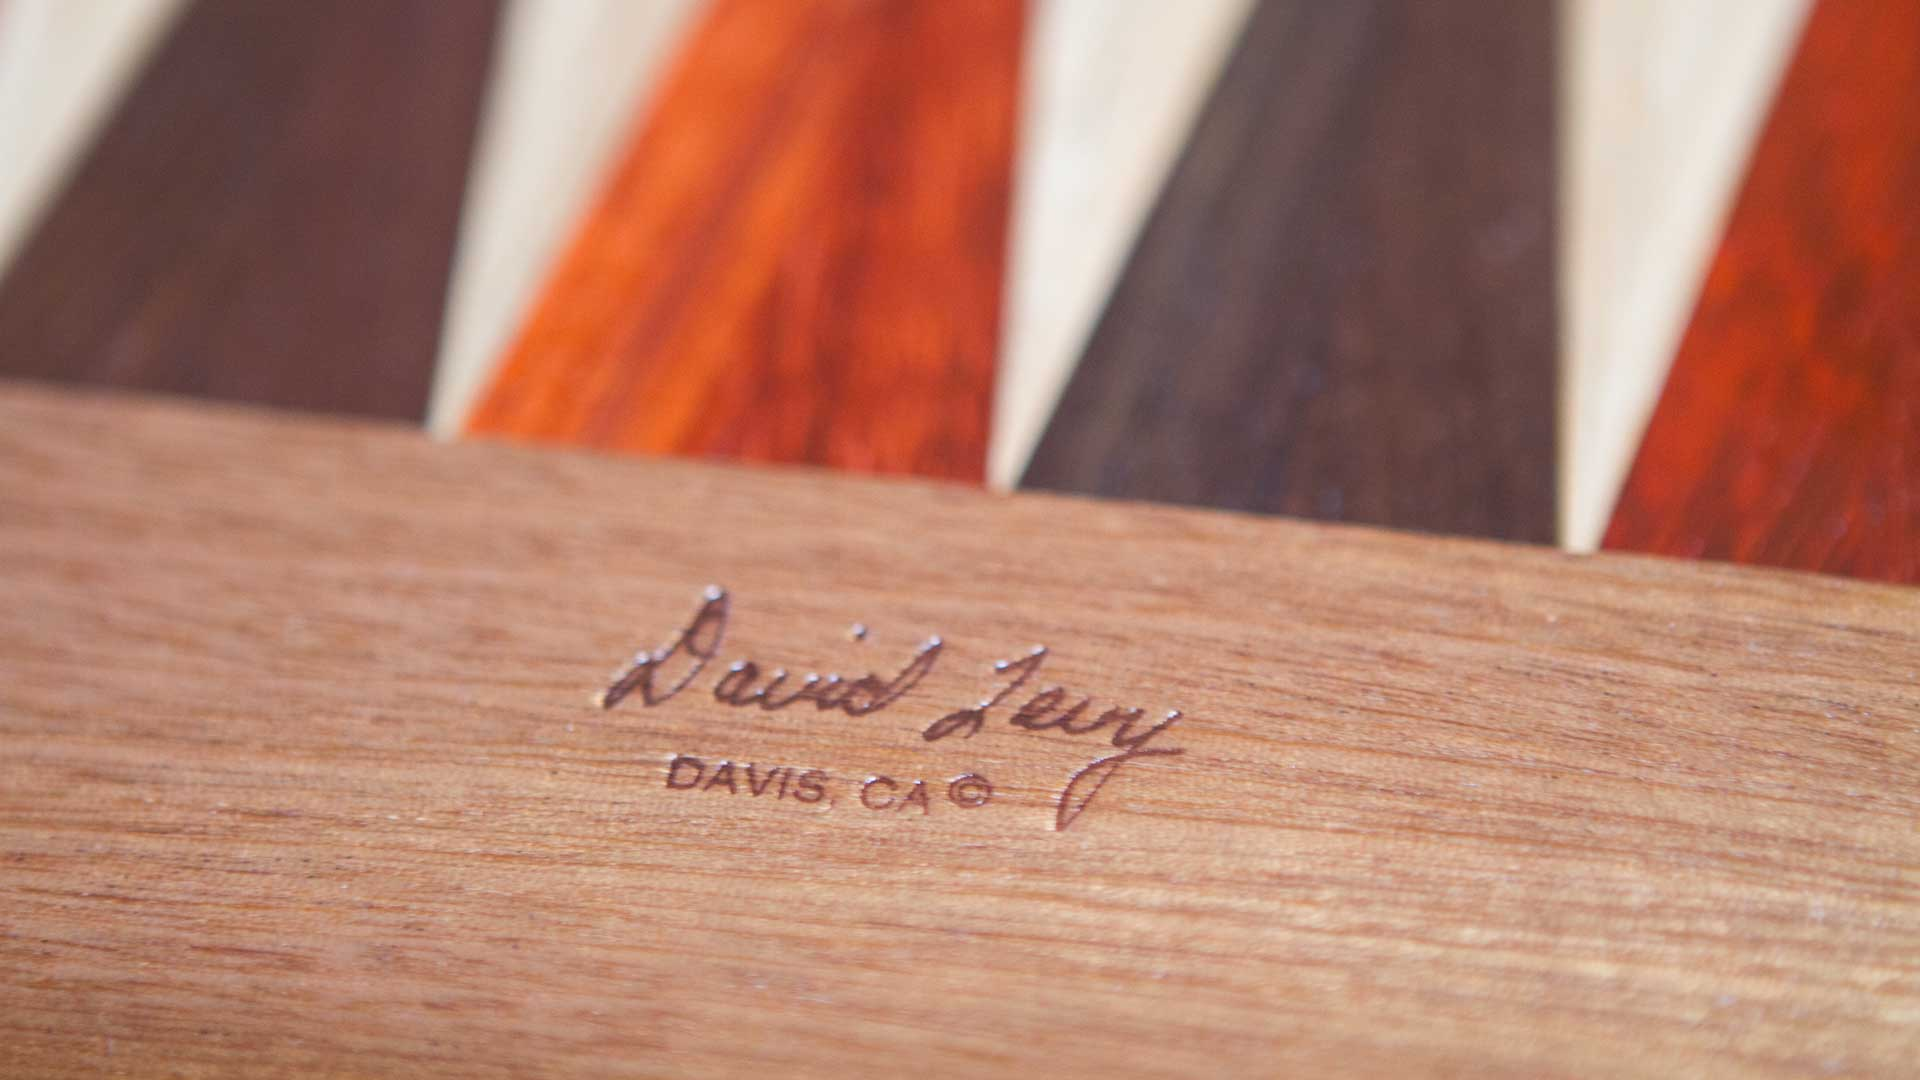 David Levy from Hardwood Creations Signature